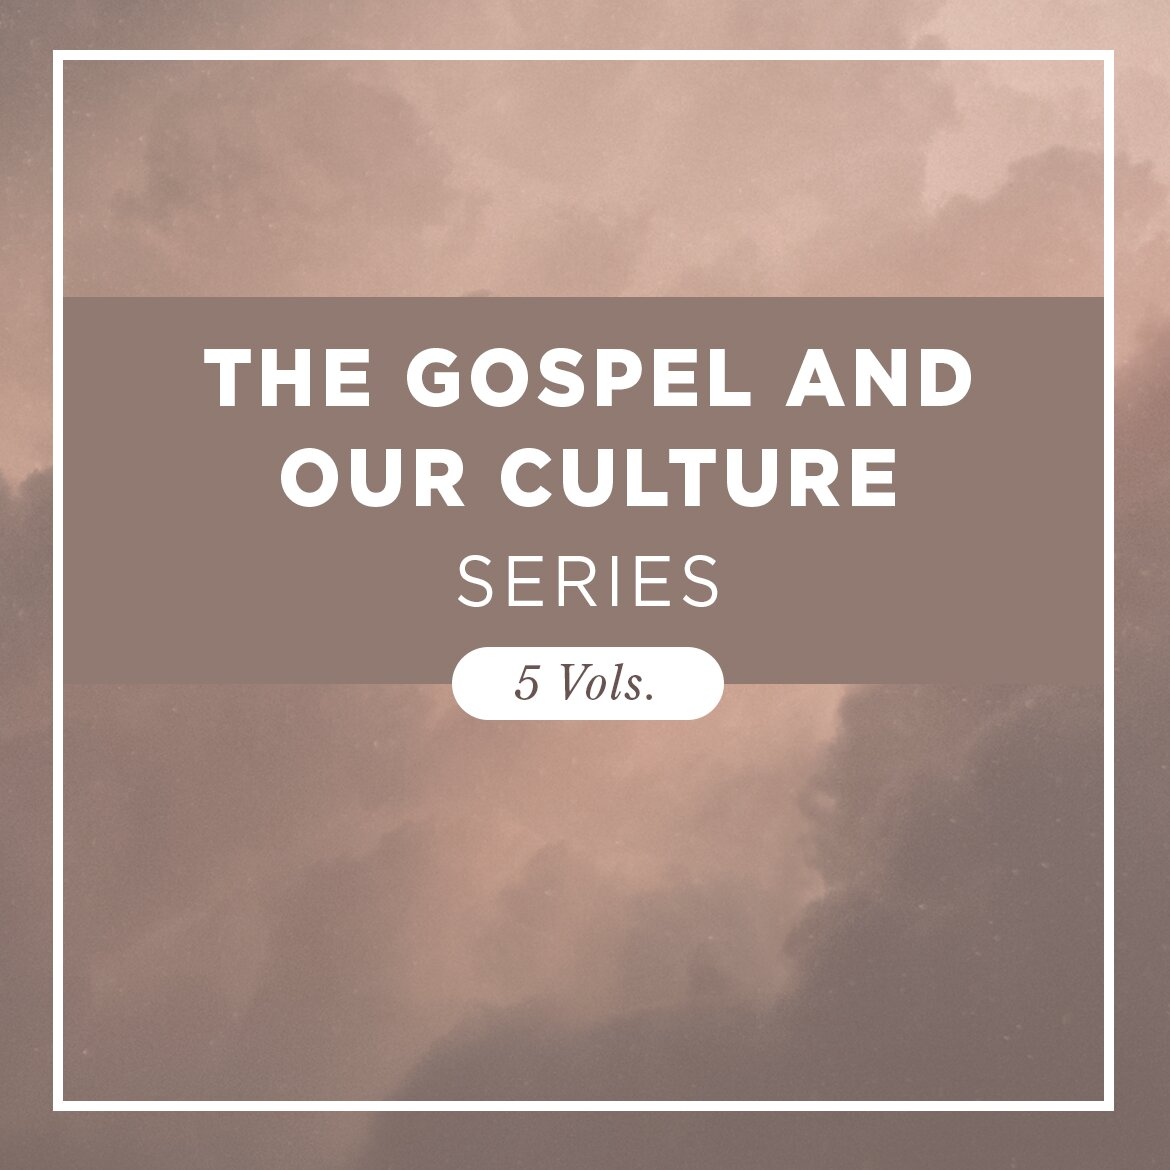 The Gospel and Our Culture Series (5 vols.)